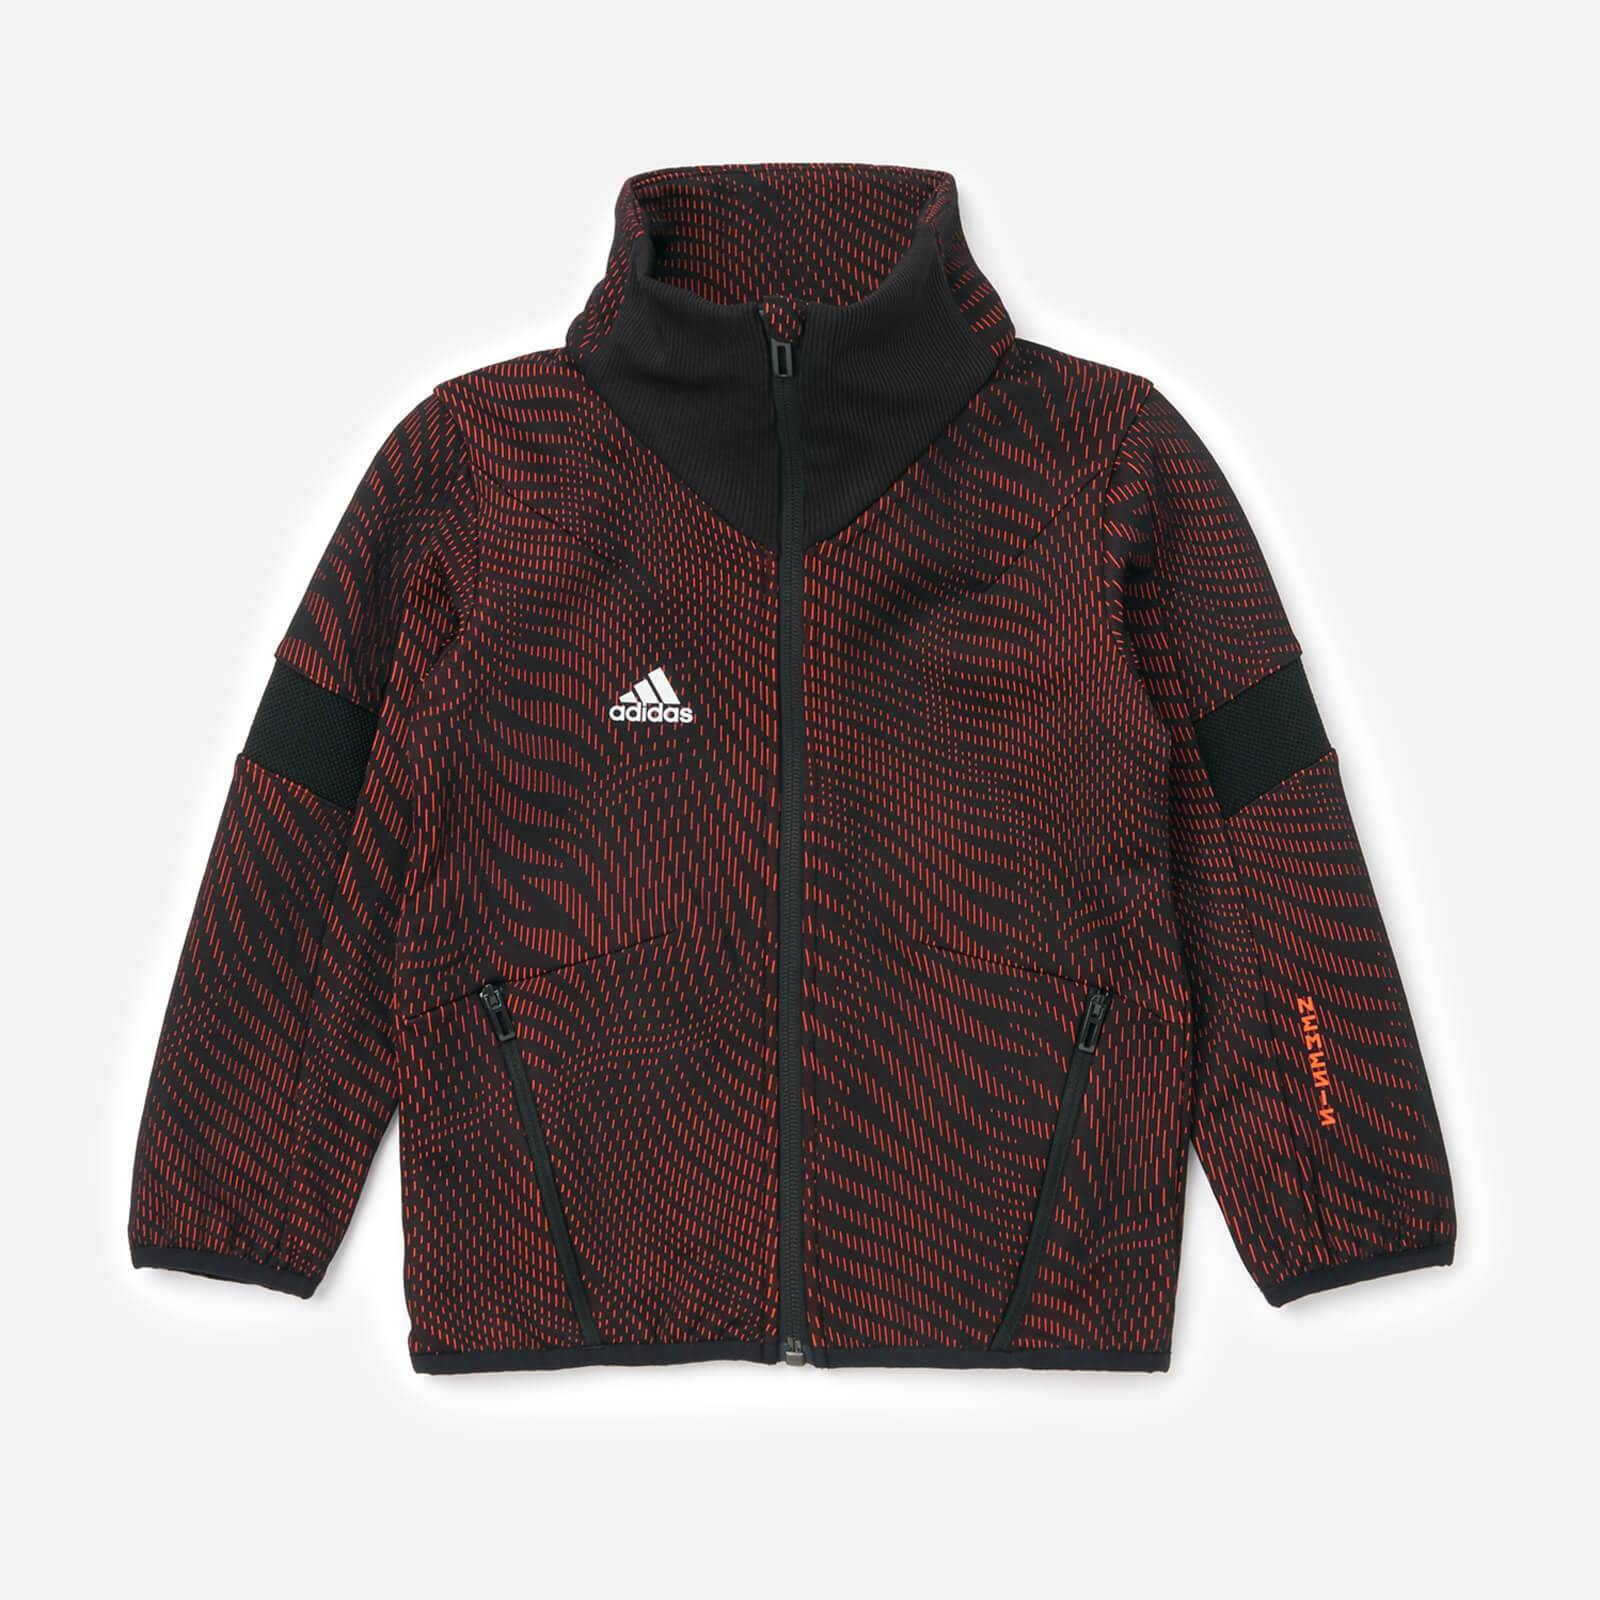 adidas Boys' Young Boys Nemis Top - Red - 11-12 Years